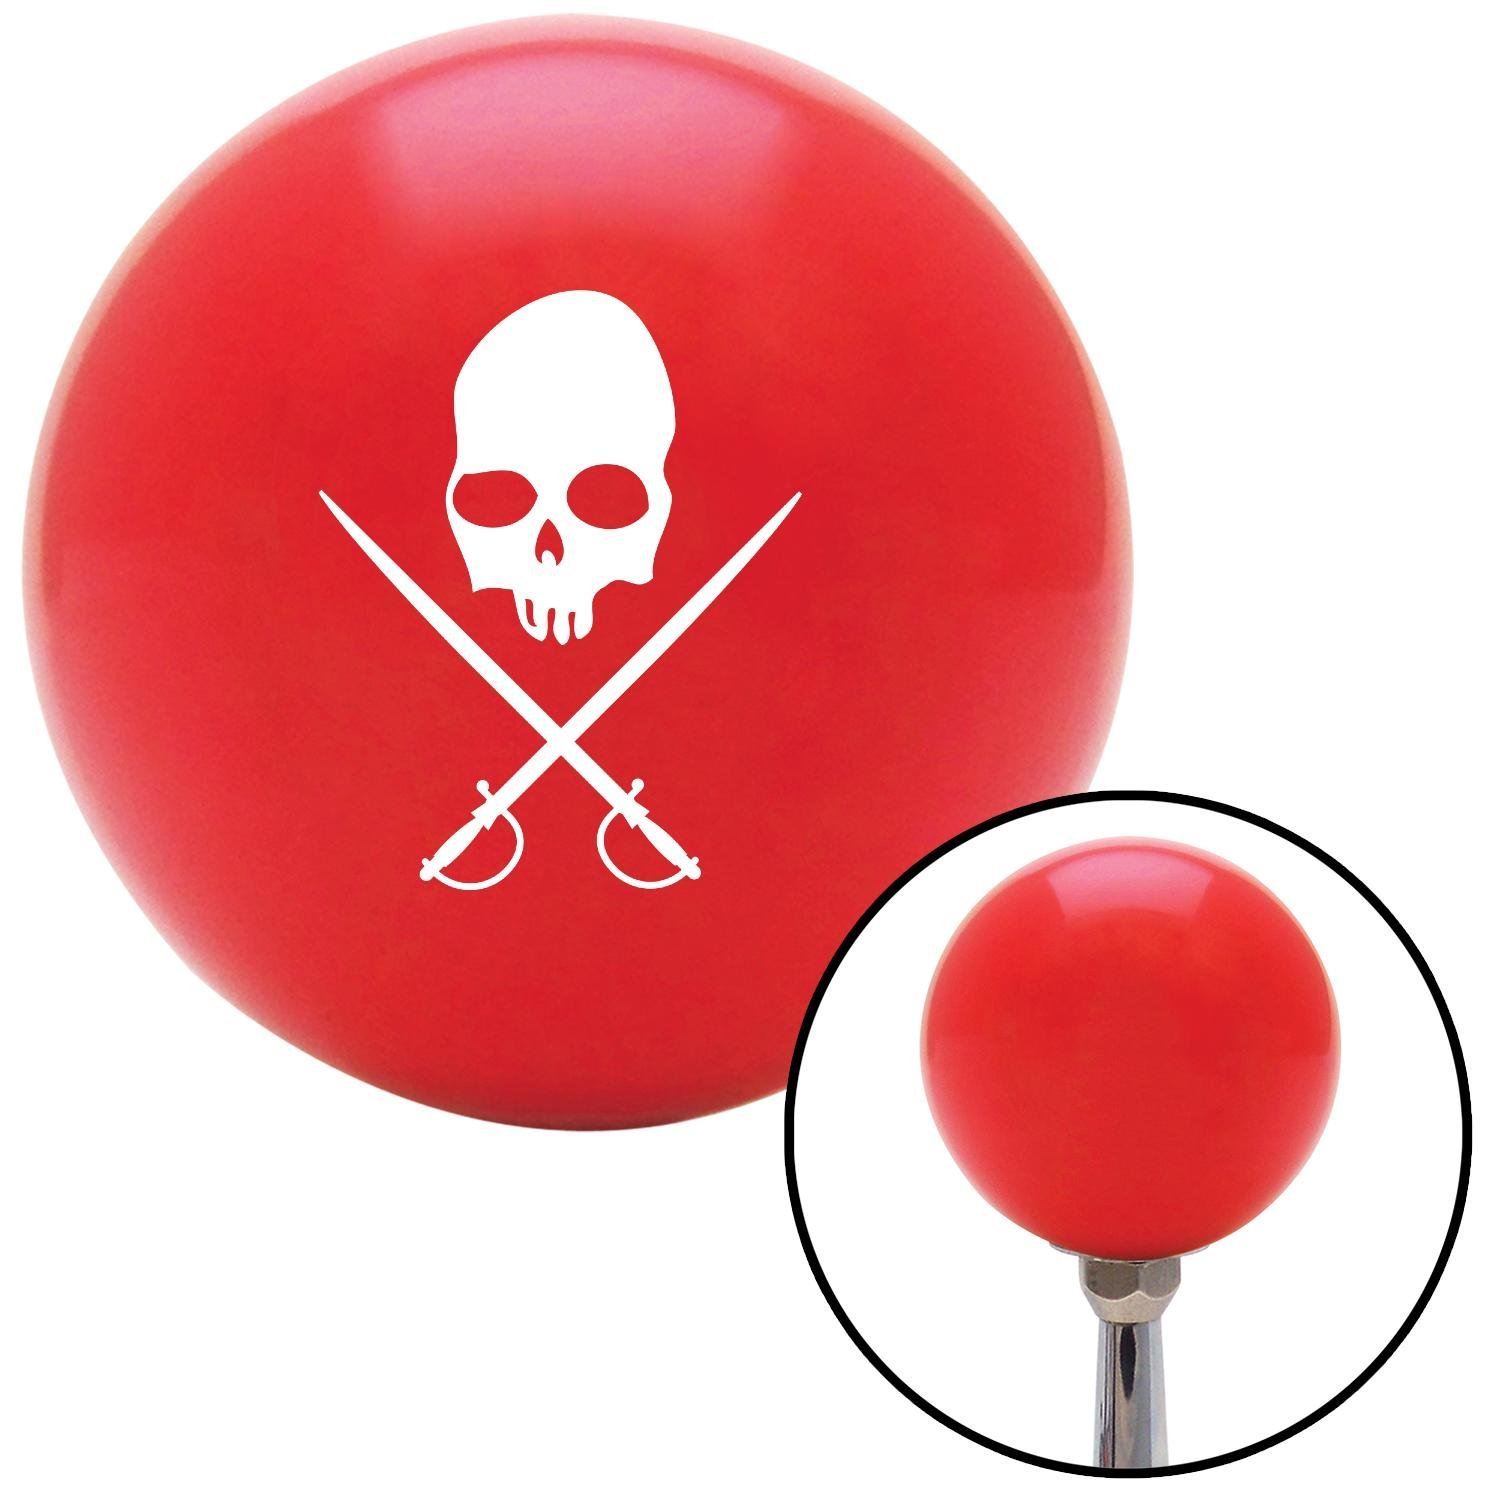 American Shifter 100906 Red Shift Knob with M16 x 1.5 Insert White Skull /& Swords